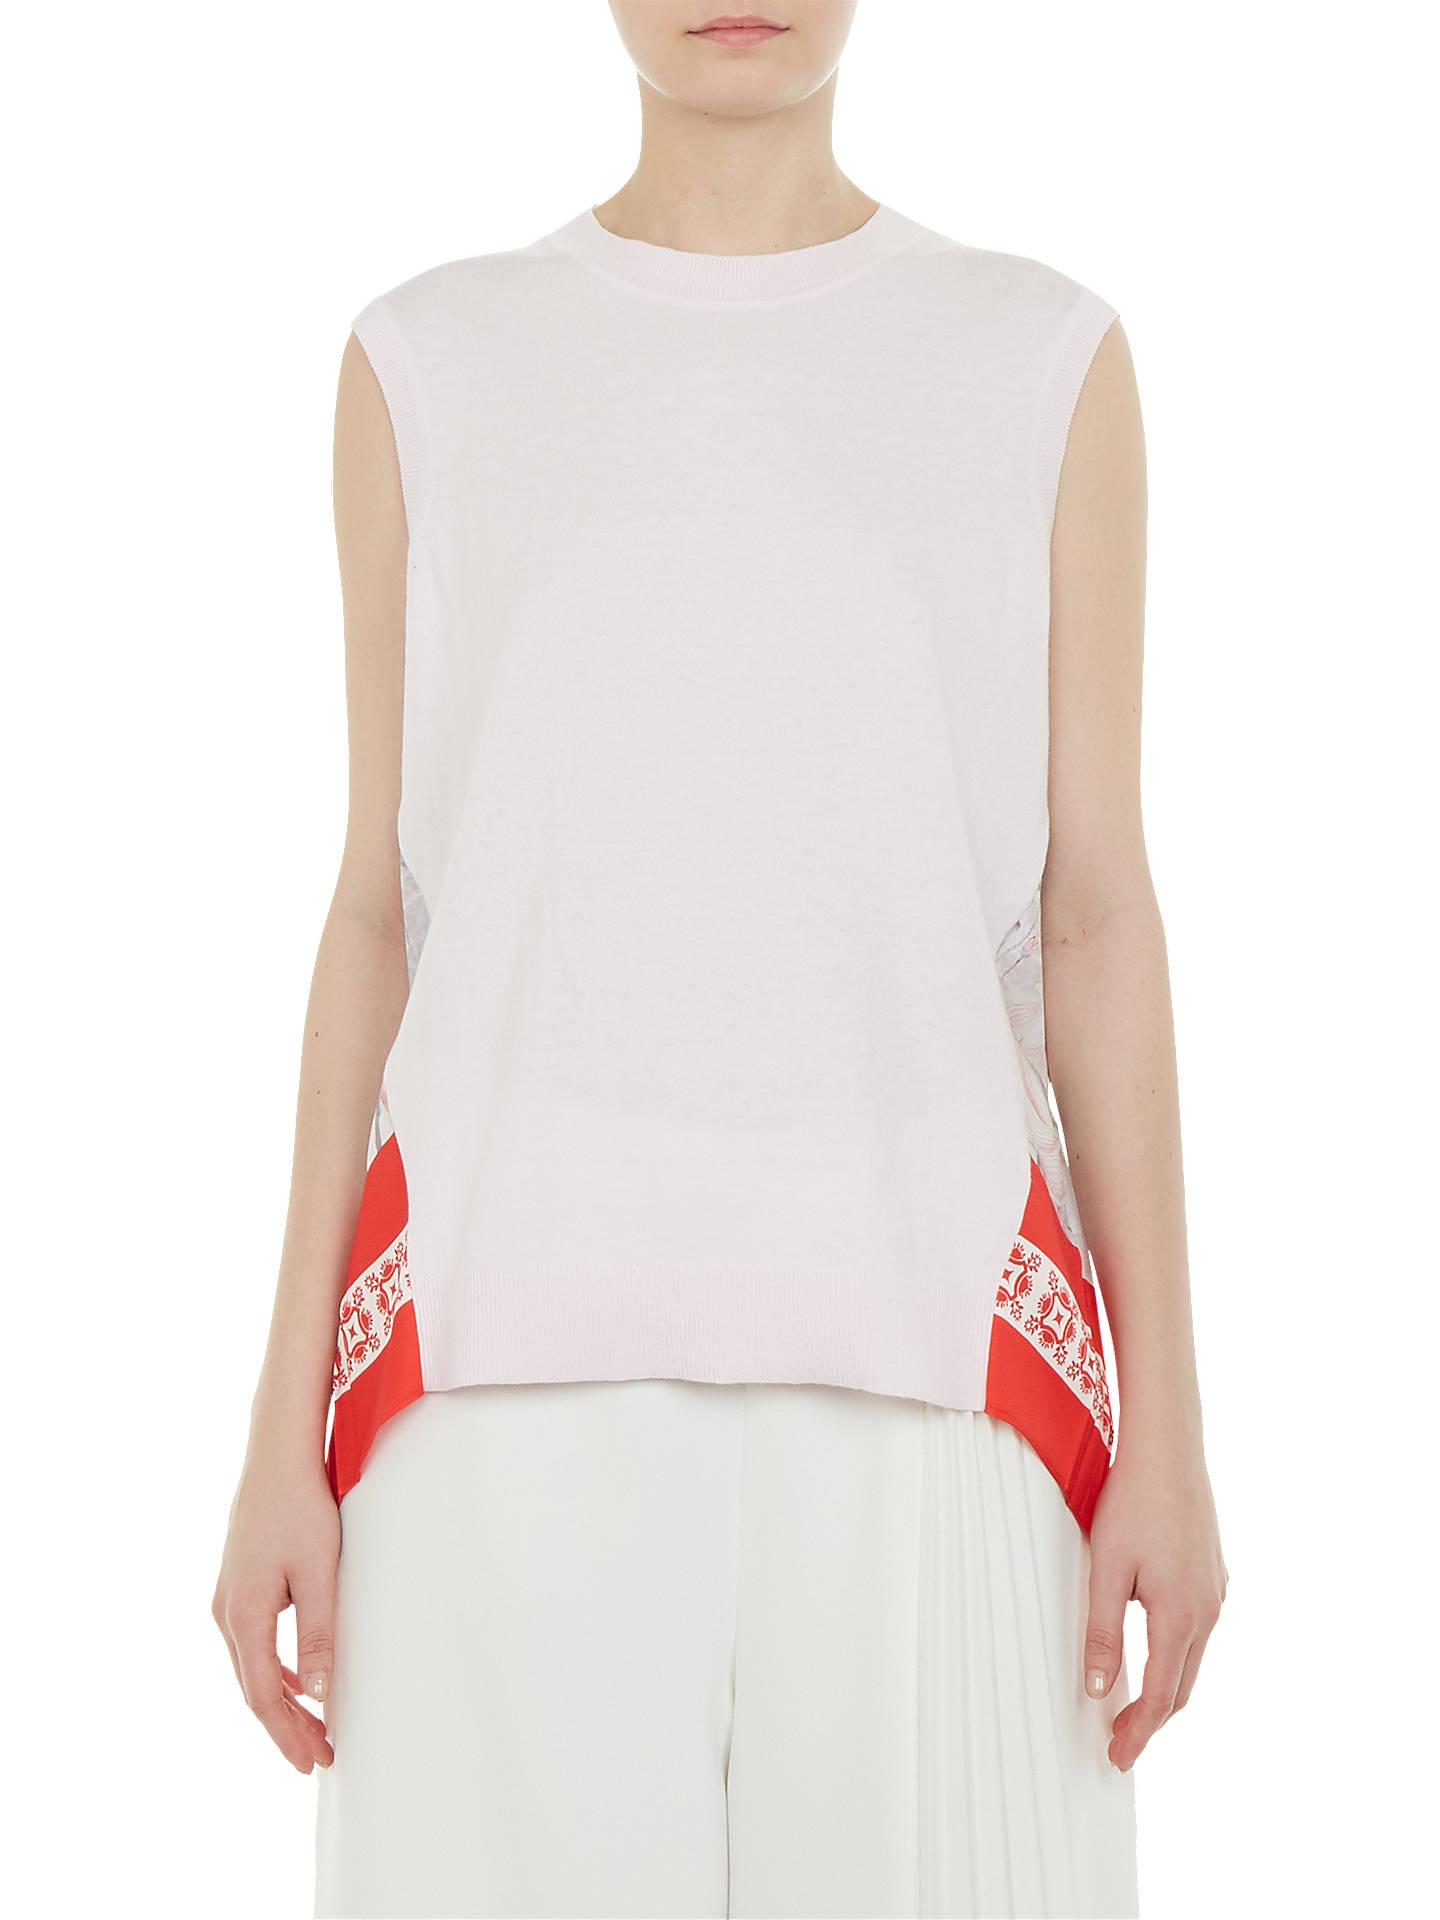 BuyTed Baker Frankii Lake Of Dreams Pleat Knit Top, Pink, 4 Online at johnlewis.com